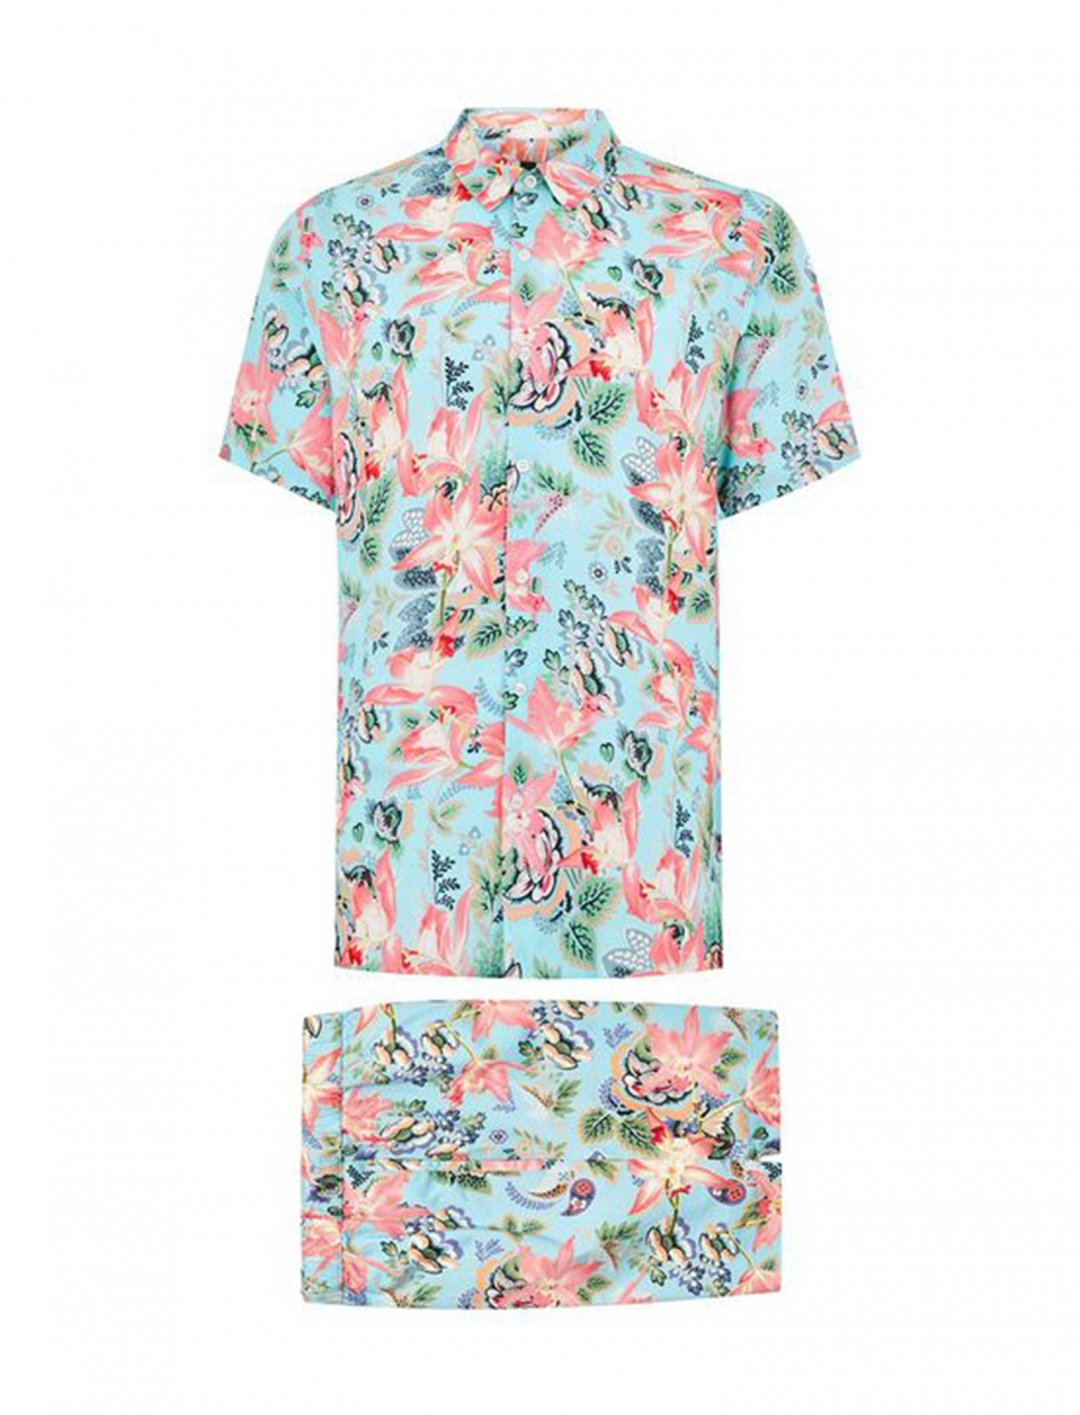 "Shirt and Shorts Co-Ord Set {""id"":5,""product_section_id"":1,""name"":""Clothing"",""order"":5} Topman"